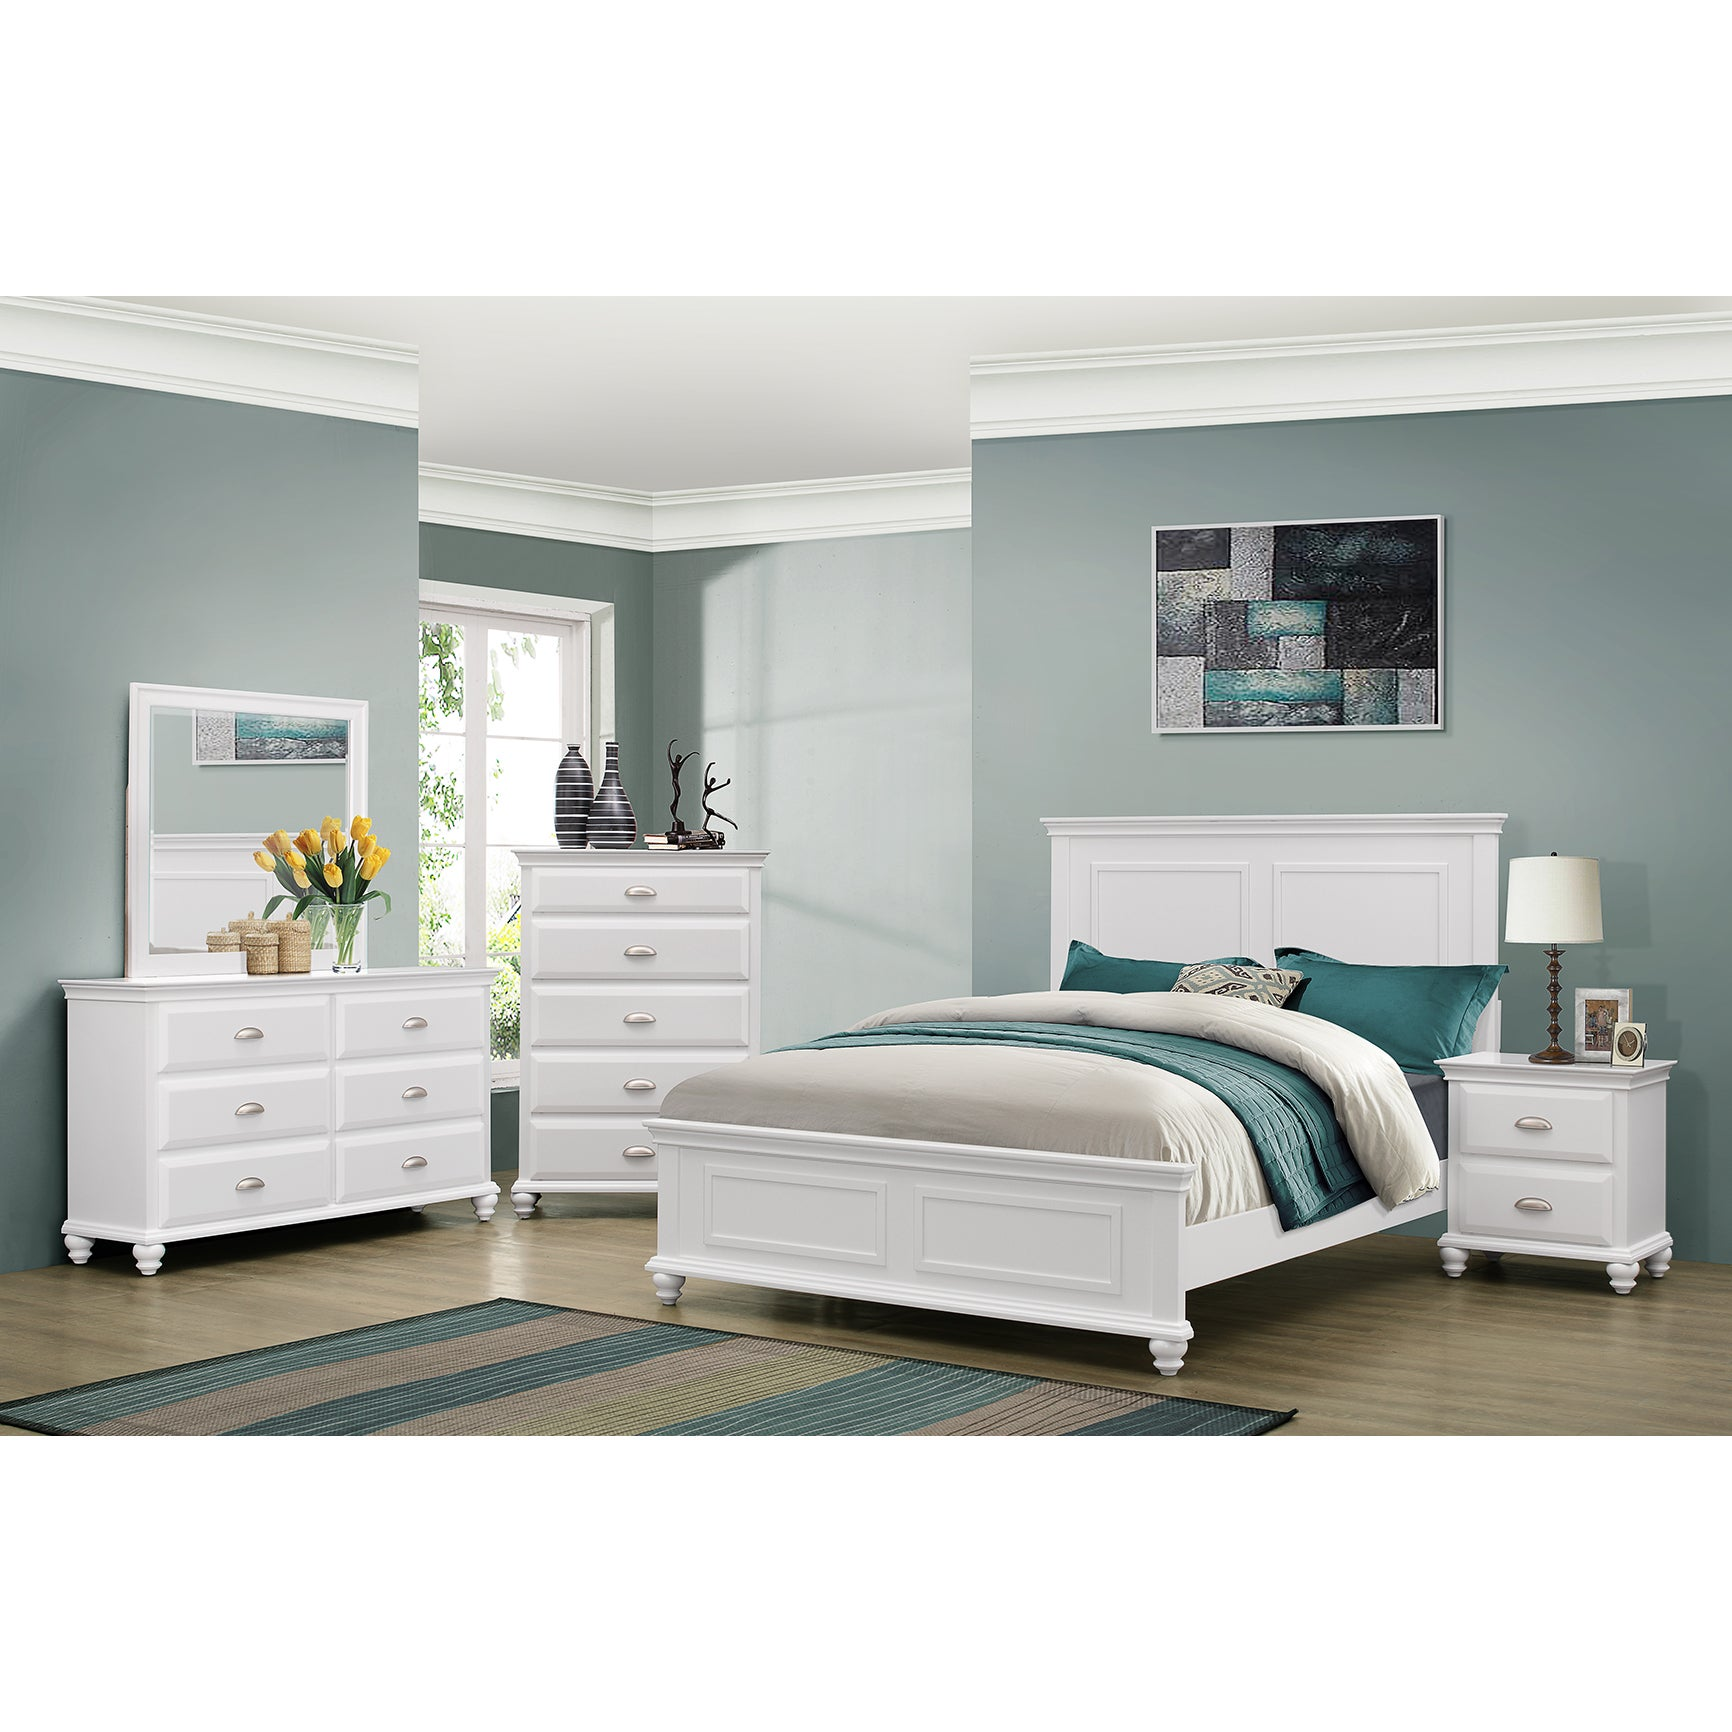 Shop Simmons Casegoods Cape Cod Collection Queen/King Bed - Free ...